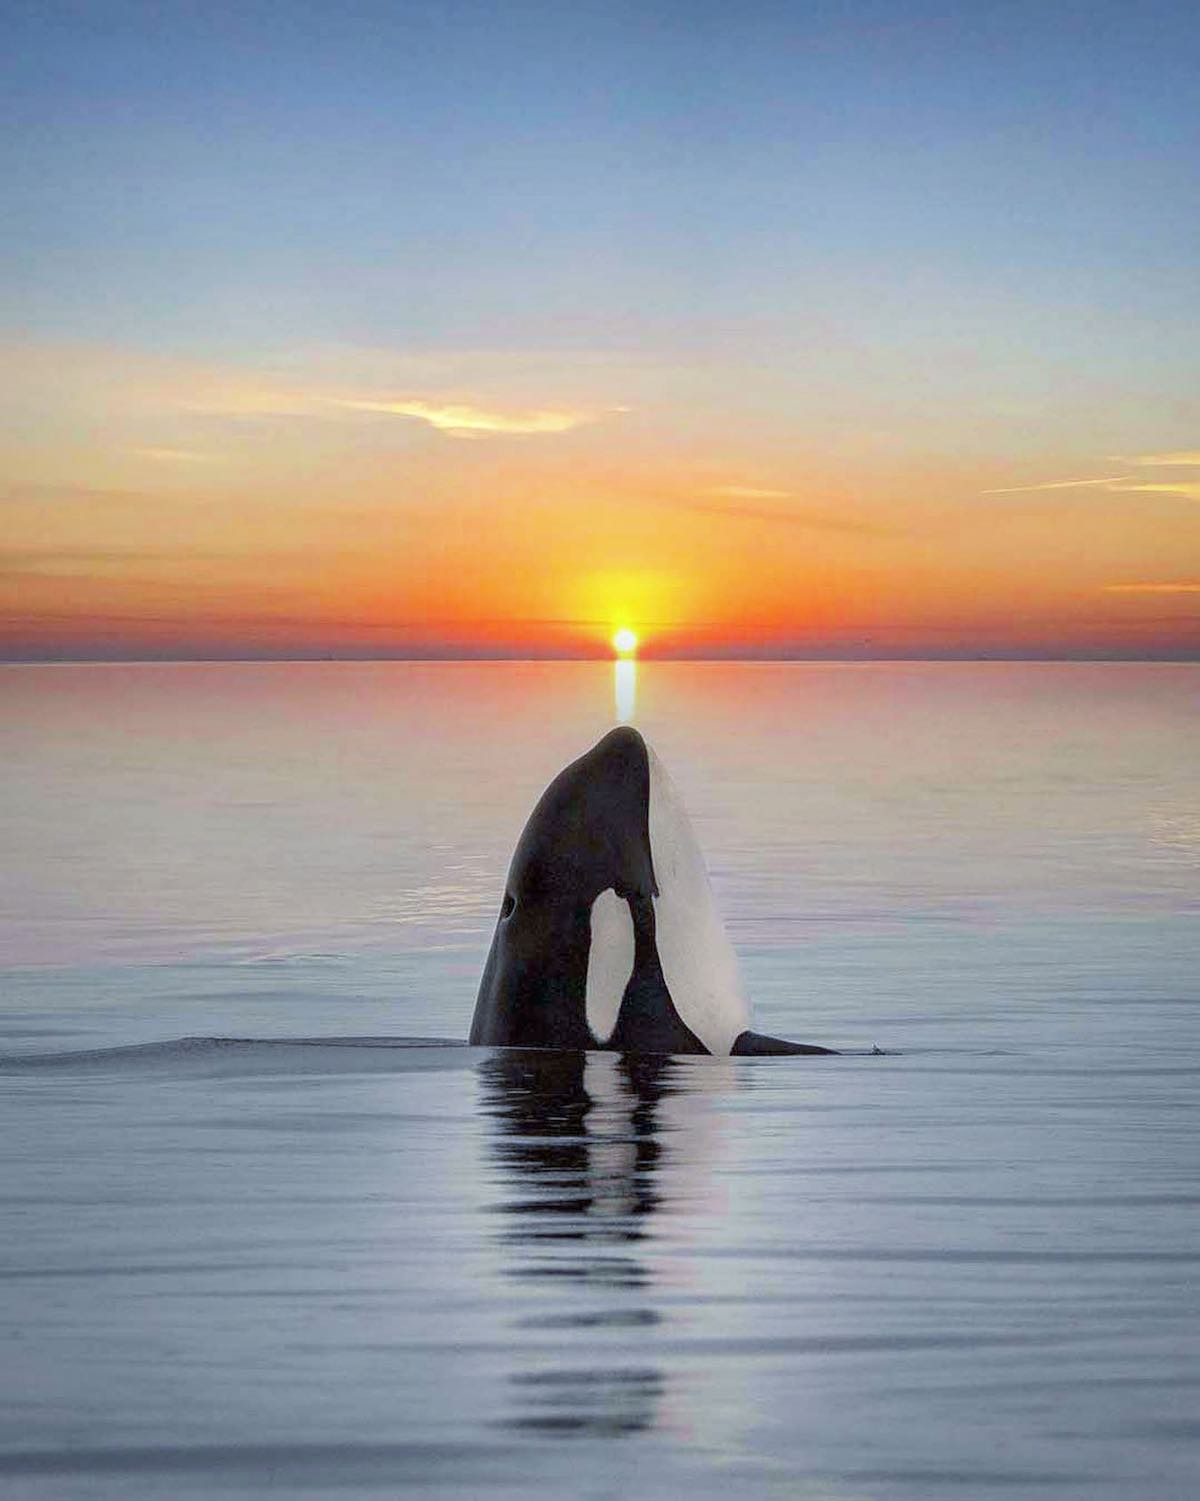 Orca Perfectly Aligned with Sunset by Mary's Mark Photography